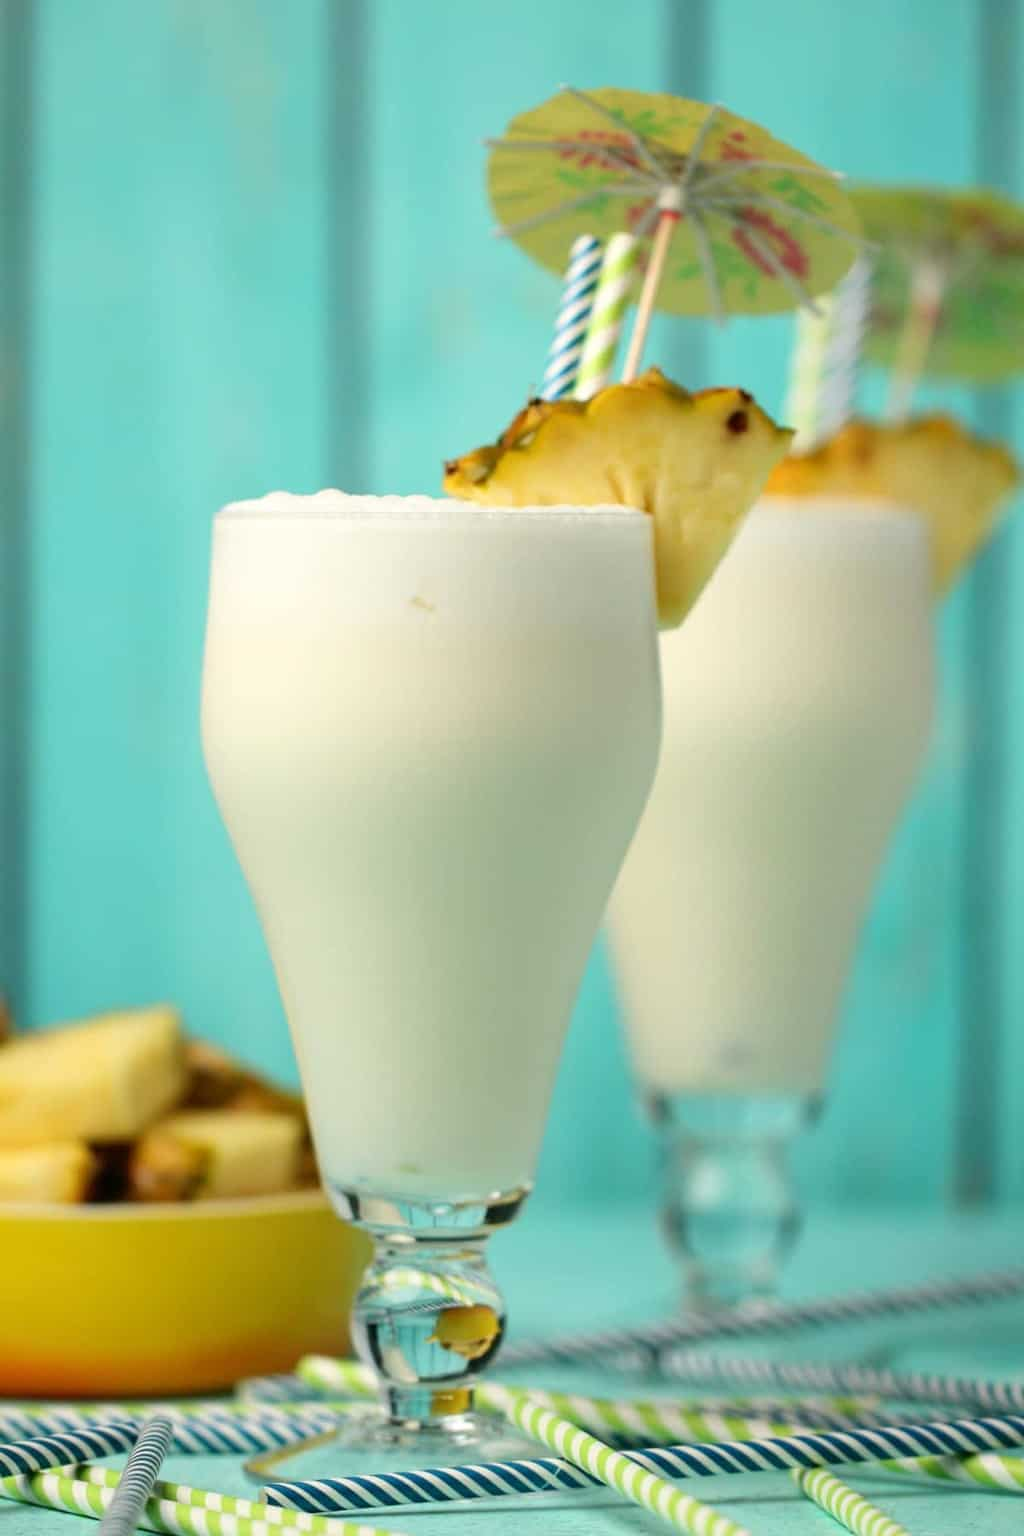 Vegan pina colada in tall glasses with pineapple slices, straws and cocktail umbrellas.